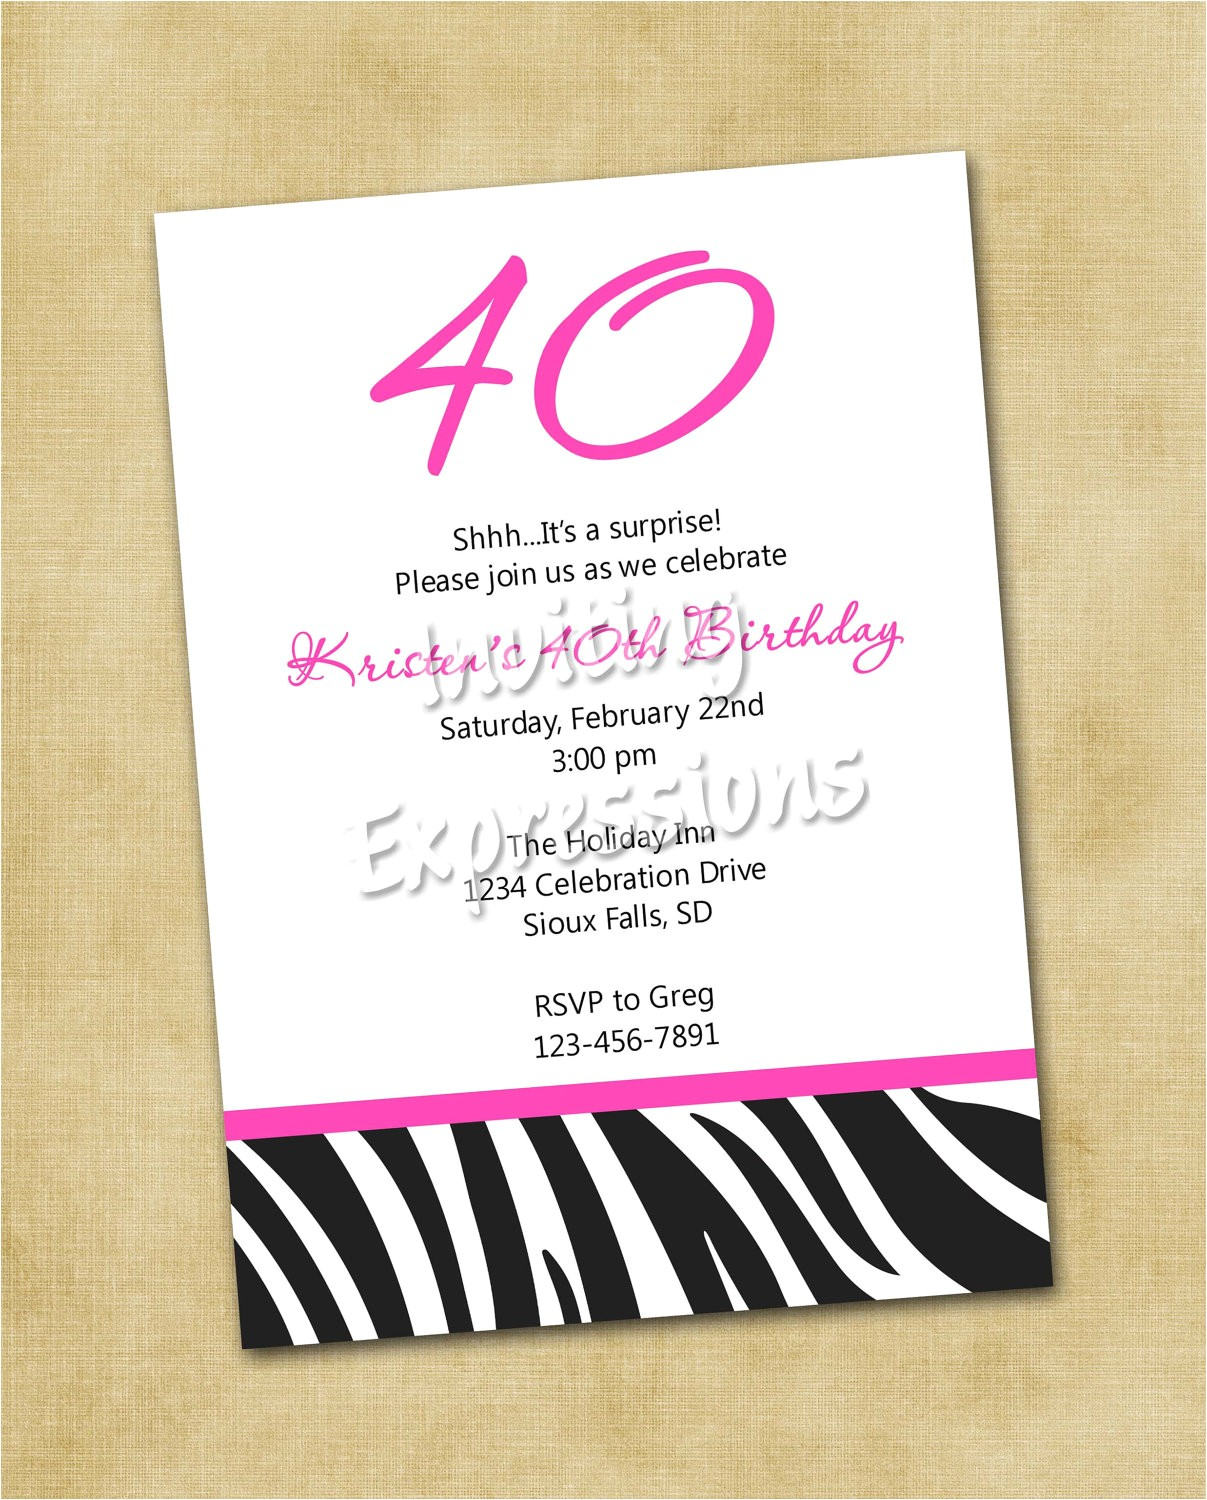 40th Party Invitation Wording top 13 40th Birthday Party Invitation Wording theruntime Com